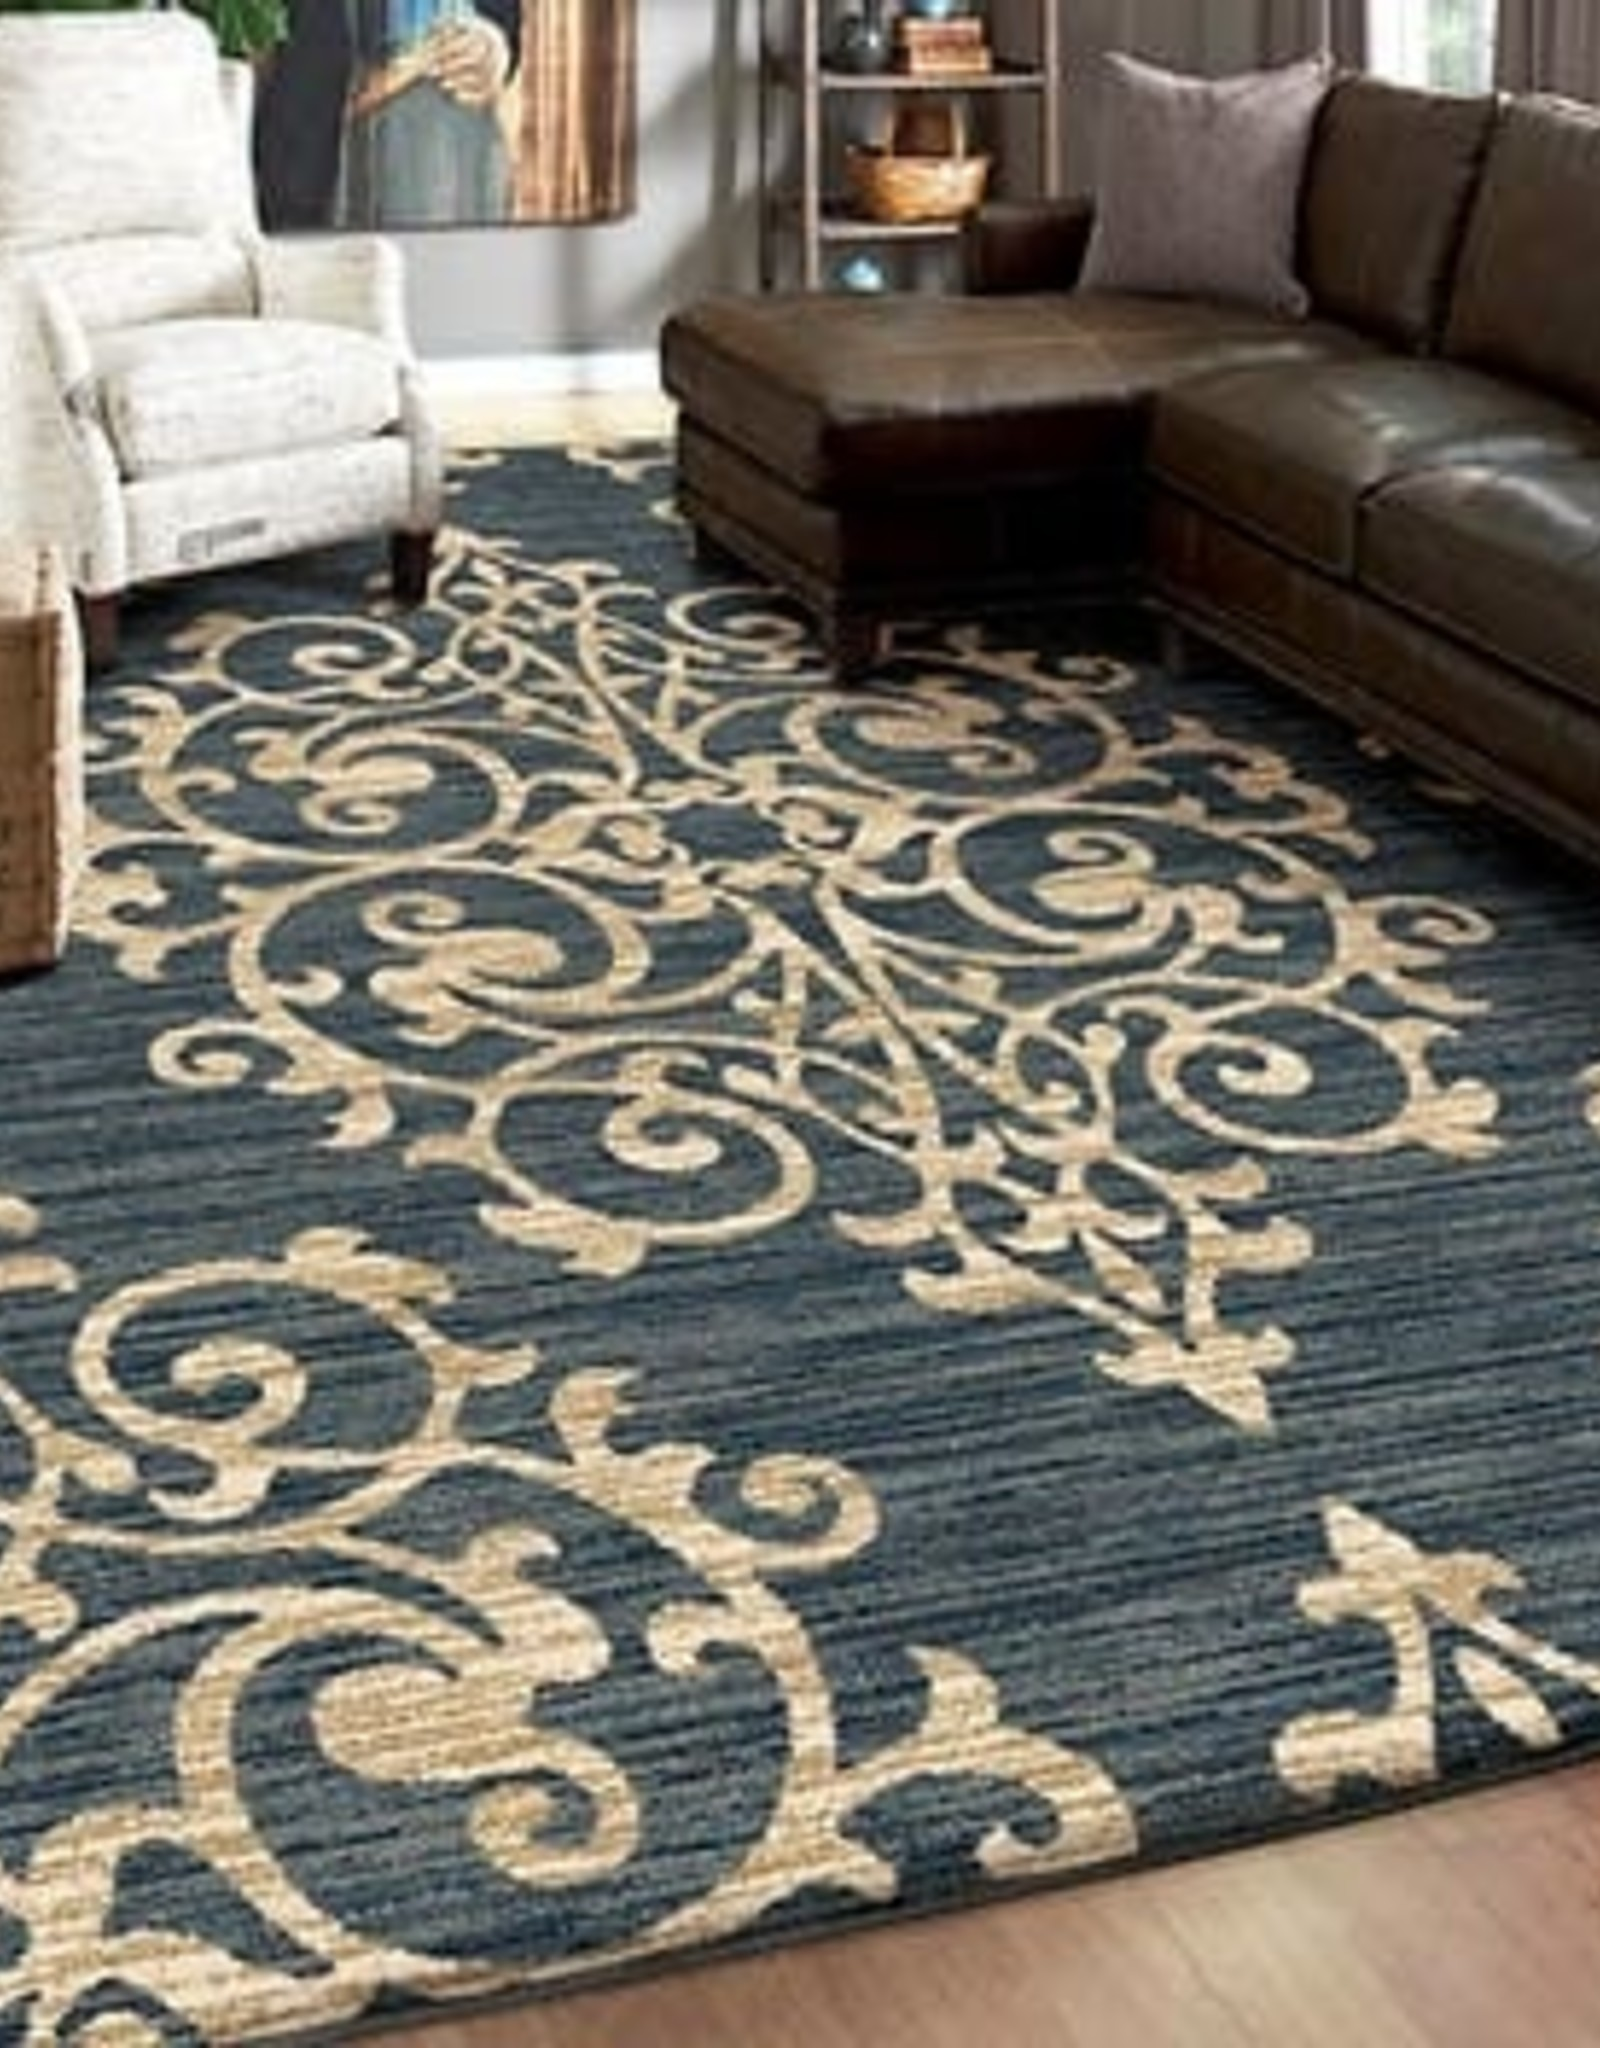 ORIAN RUGS INC C O Easy Living Rug and Runner Combo